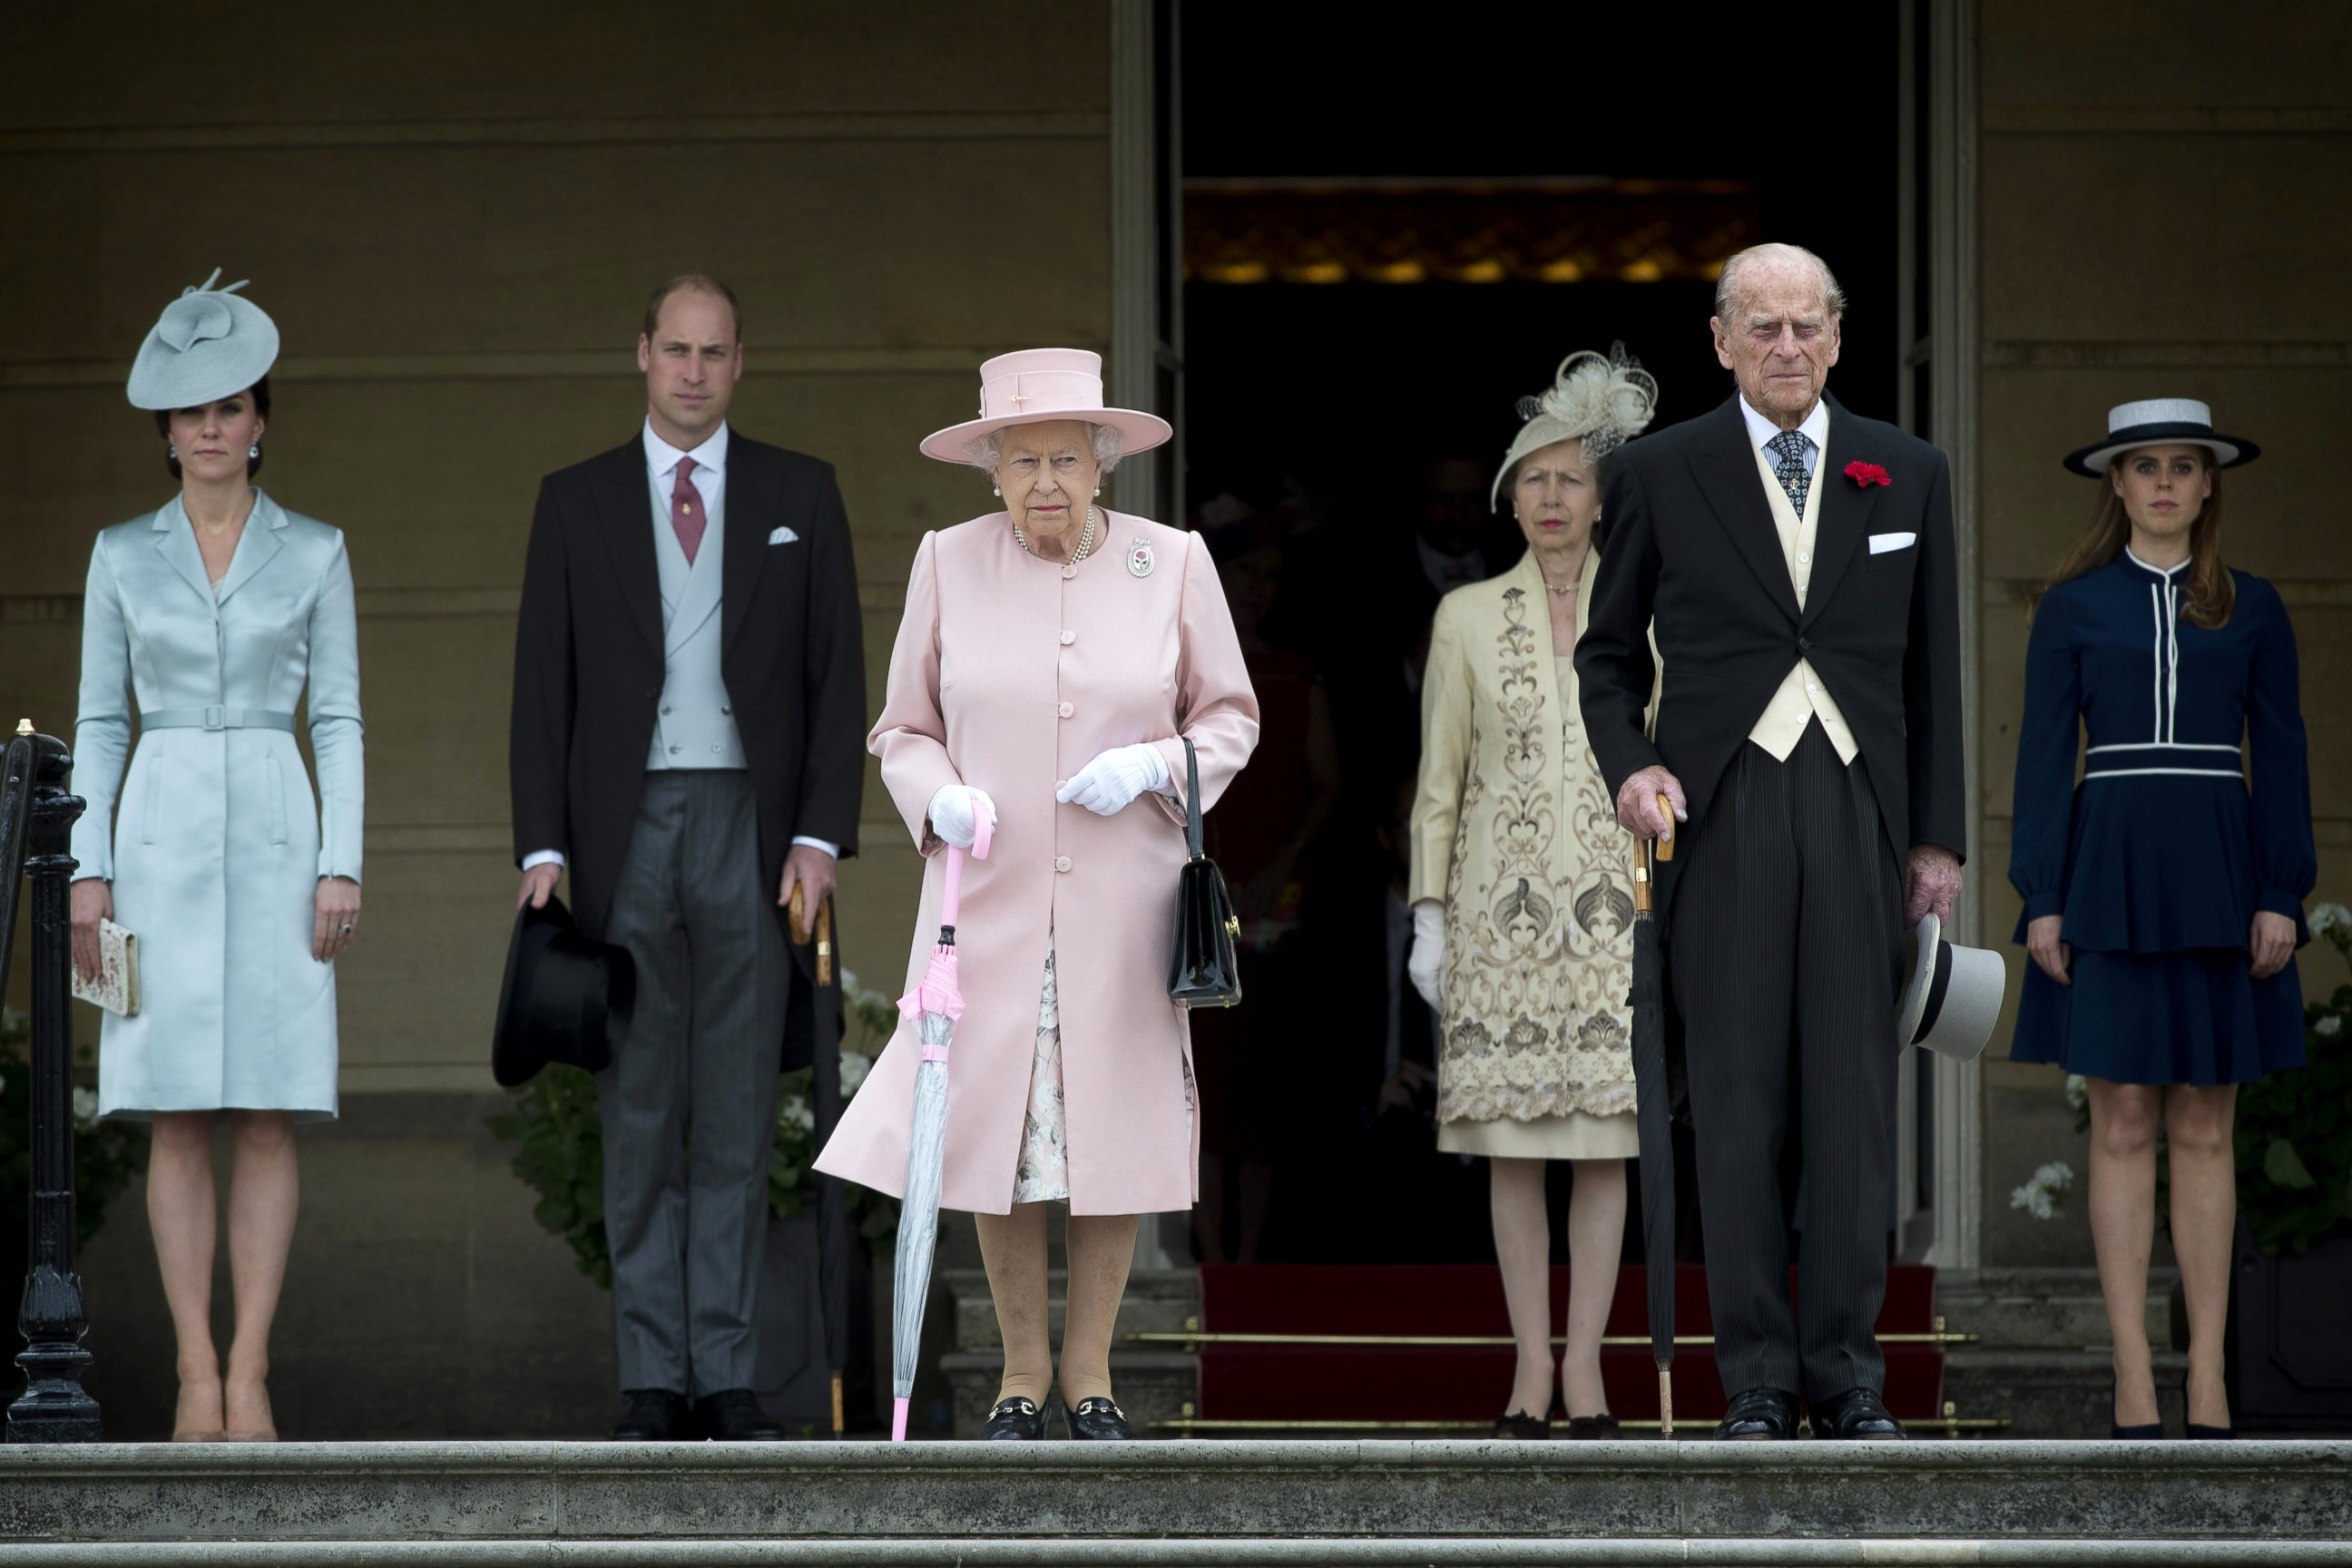 The royal family steps out in London